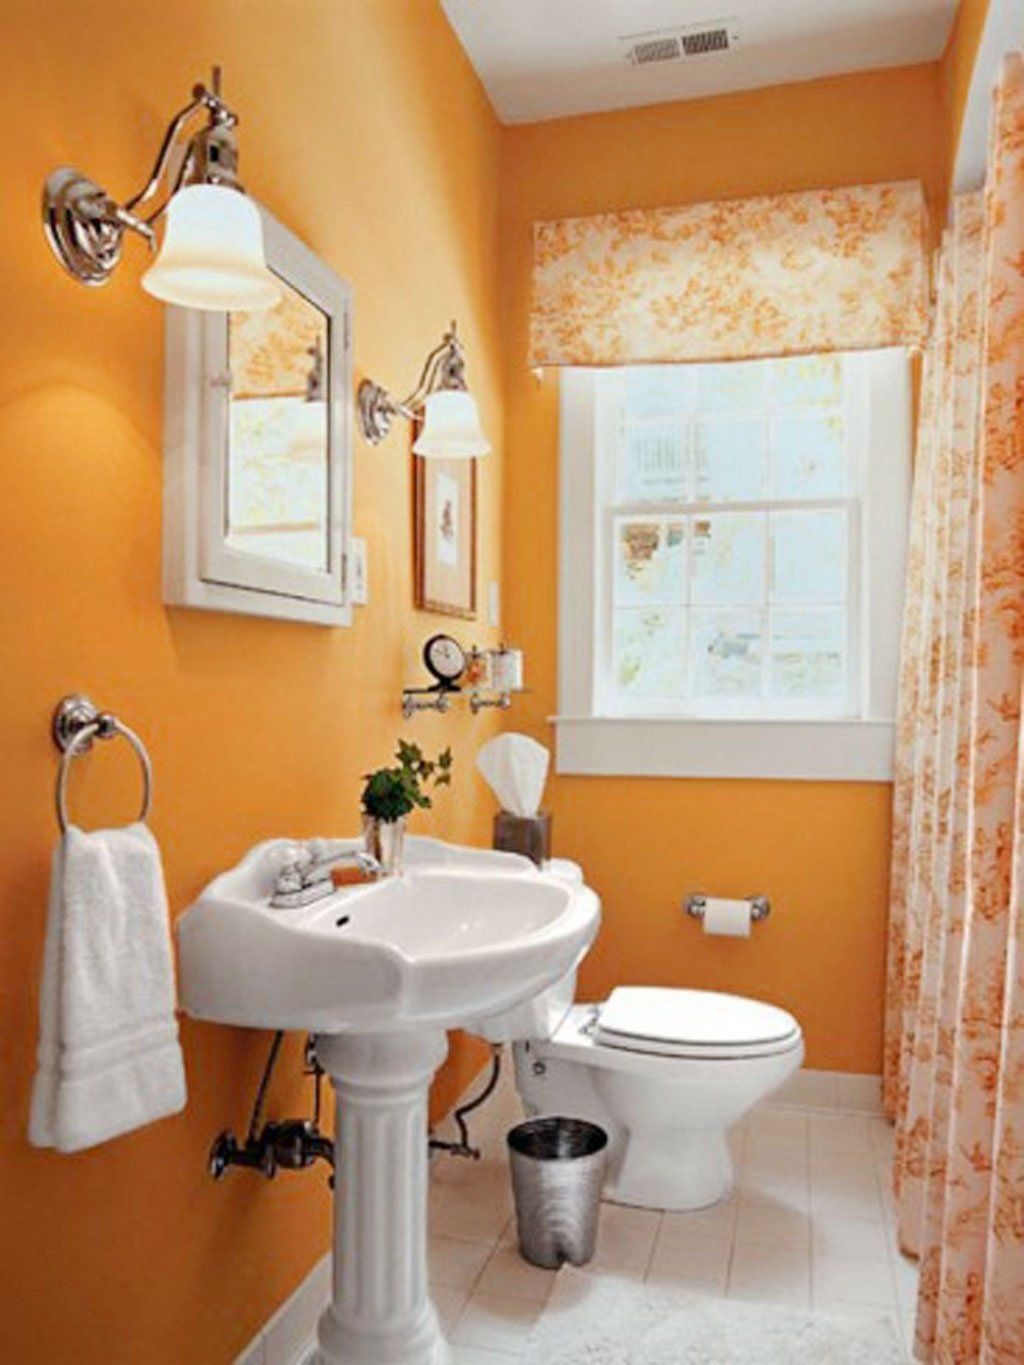 bathroom ideas color – the best advice for color selection is to